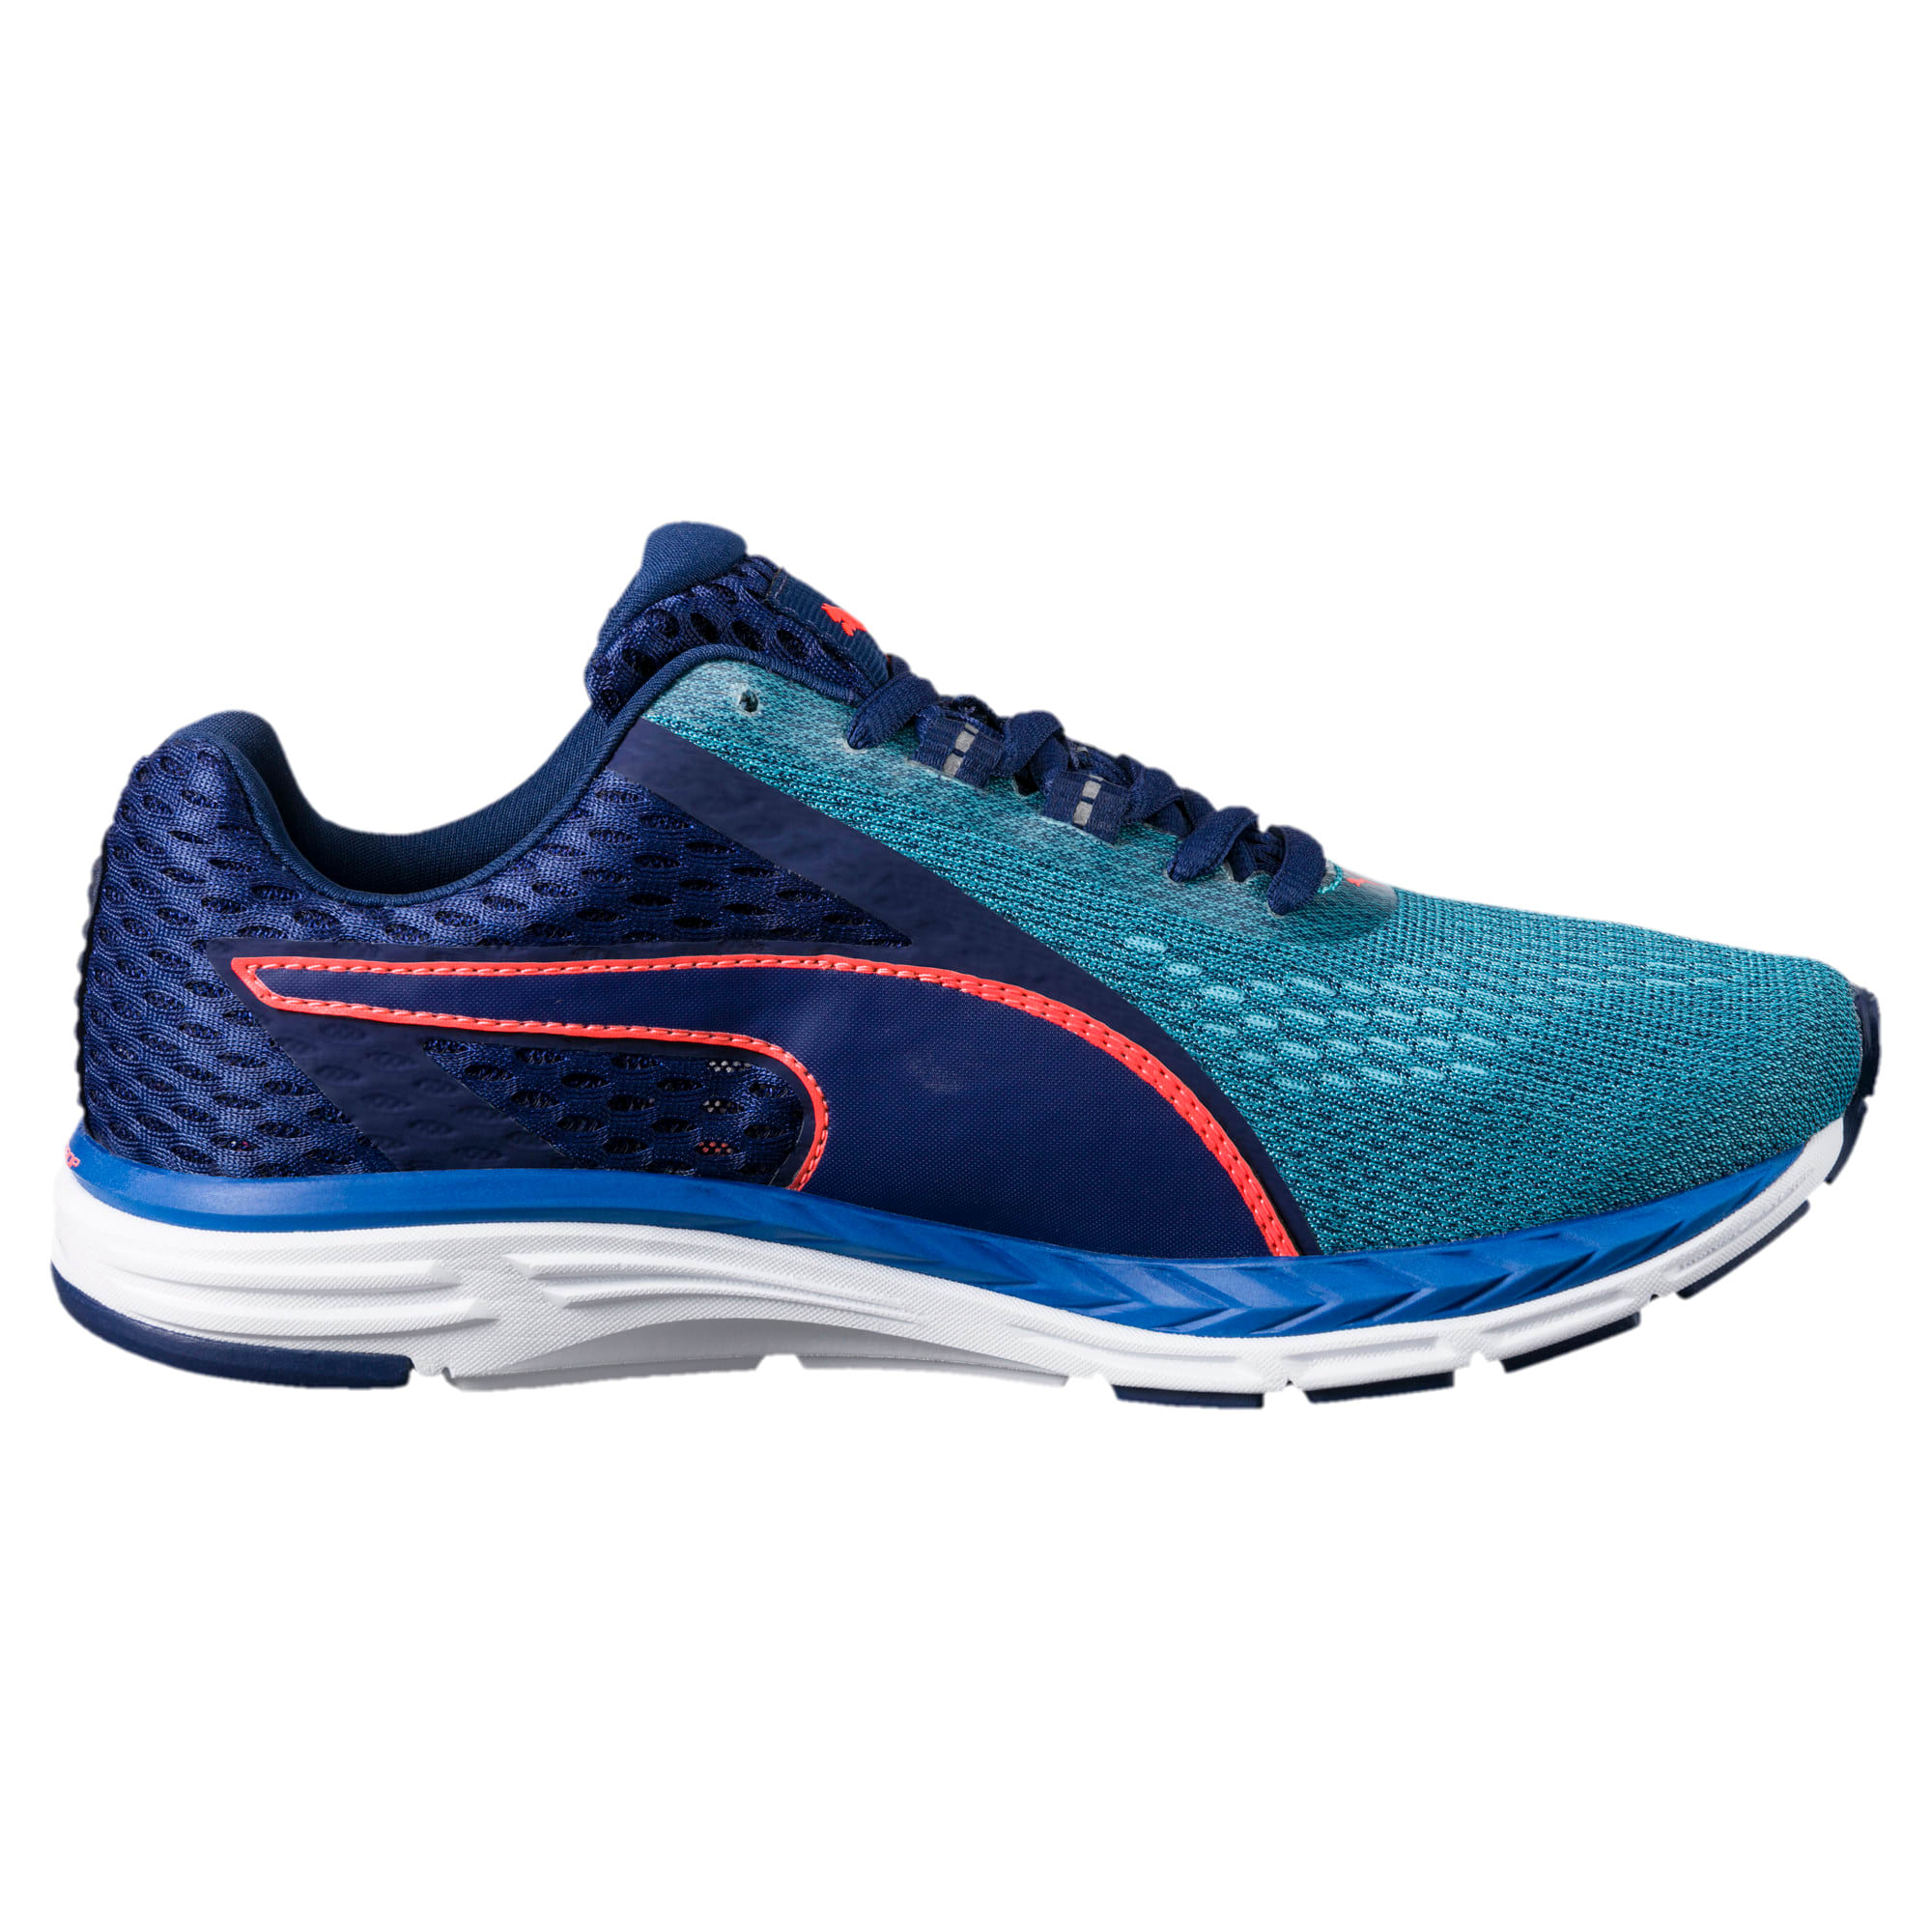 Thumbnail 5 of Speed 500 IGNITE 2 Kids' Running Shoes, Nrgy Turquoise-Blue Depths, medium-IND